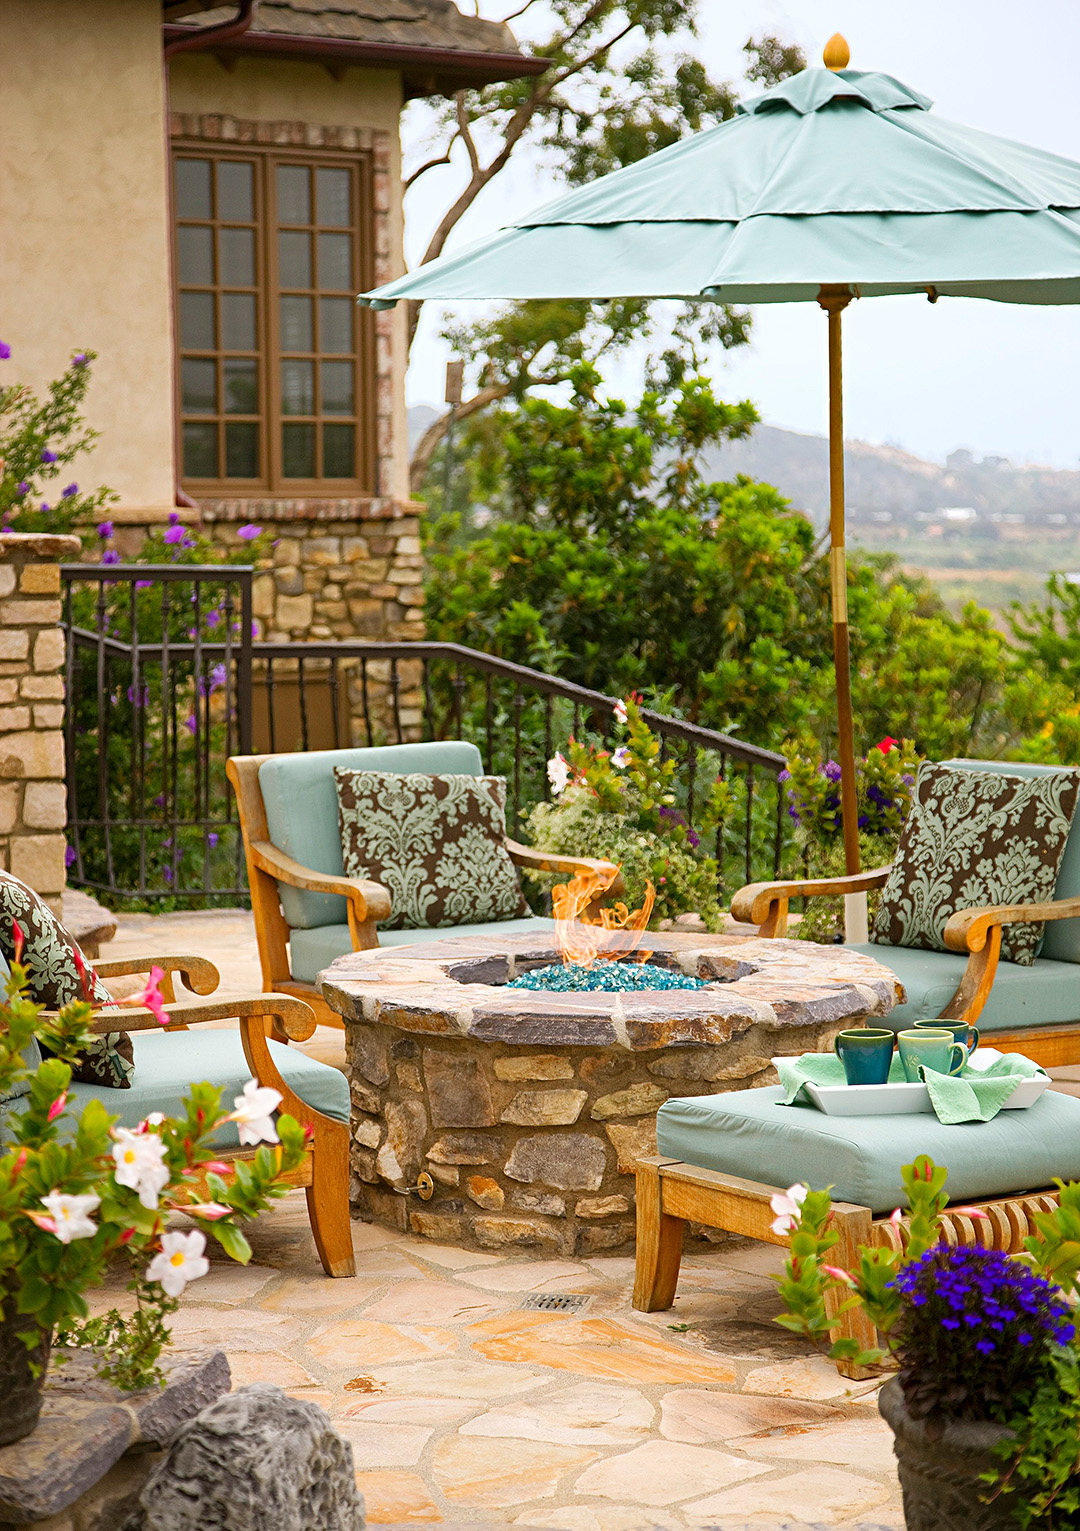 9 Budget Friendly Backyard Ideas Better Homes Gardens pertaining to 14 Some of the Coolest Concepts of How to Improve Great Backyard Ideas On A Budget